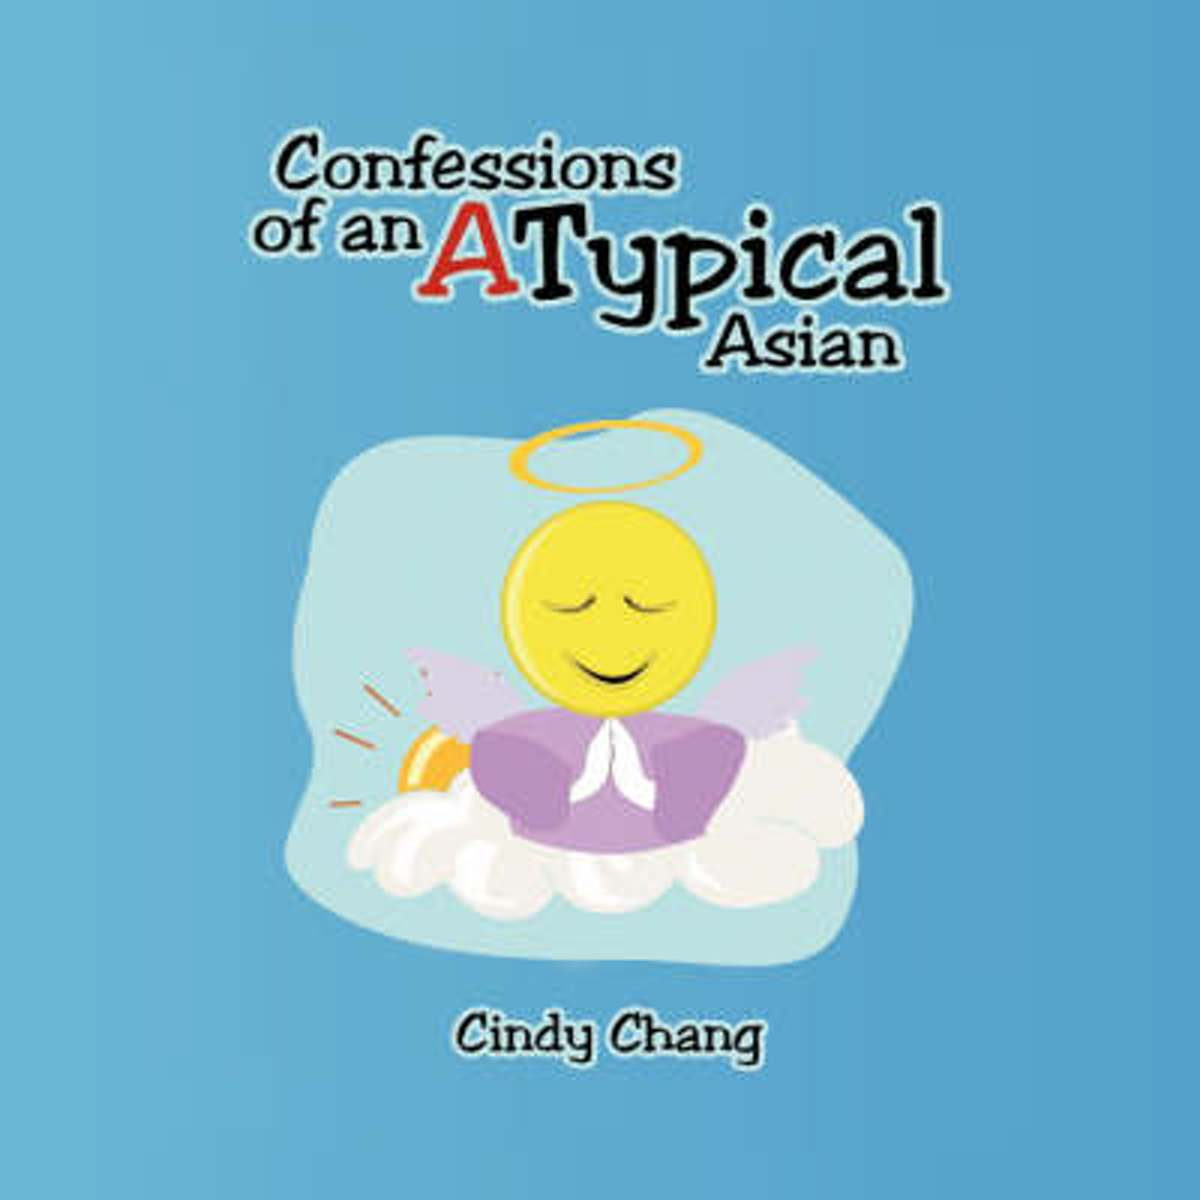 Confessions of an Atypical Asian